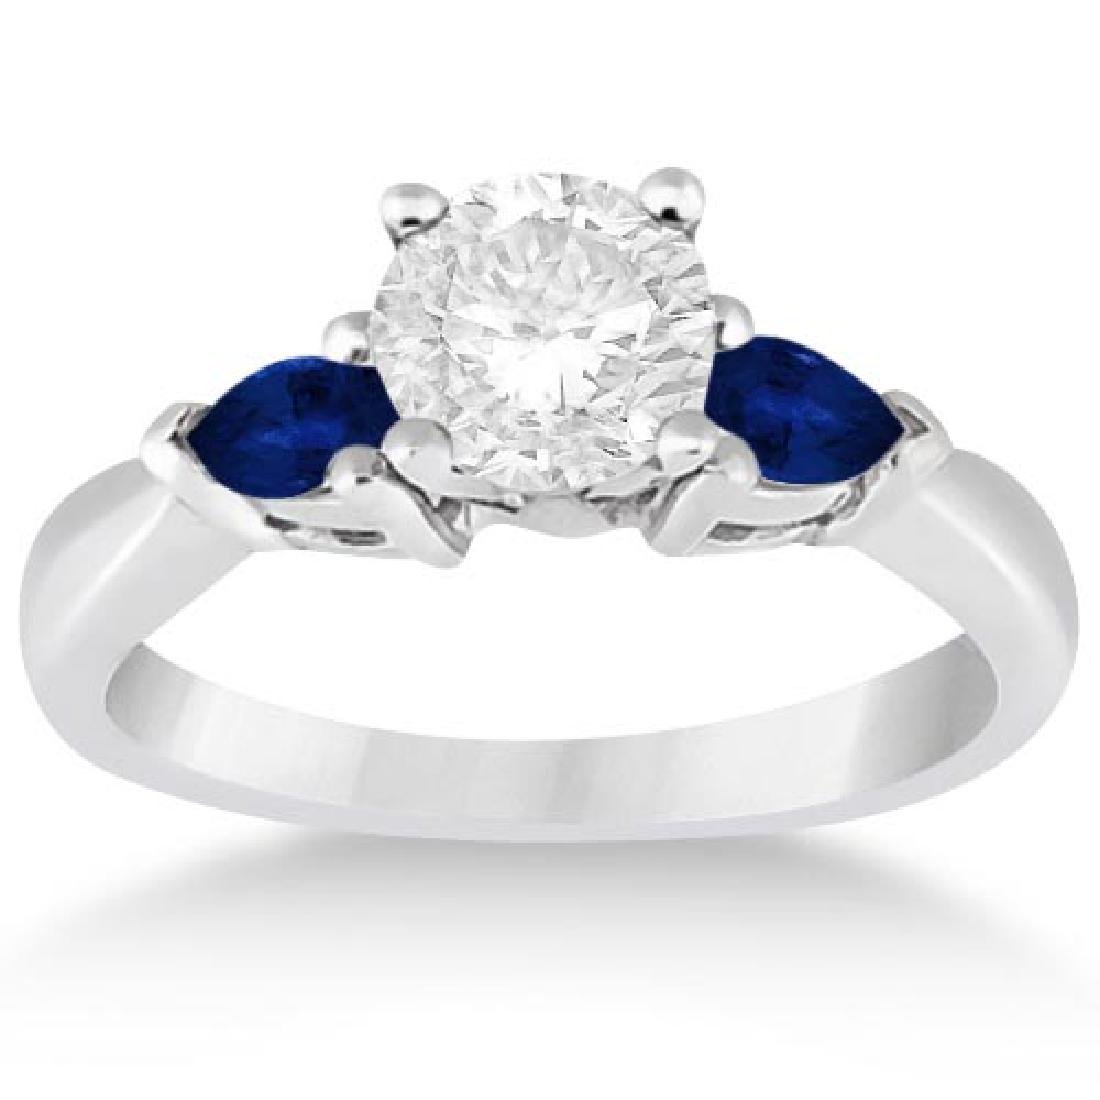 Pear Three Stone Blue Sapphire Engagement Ring 14k Whit